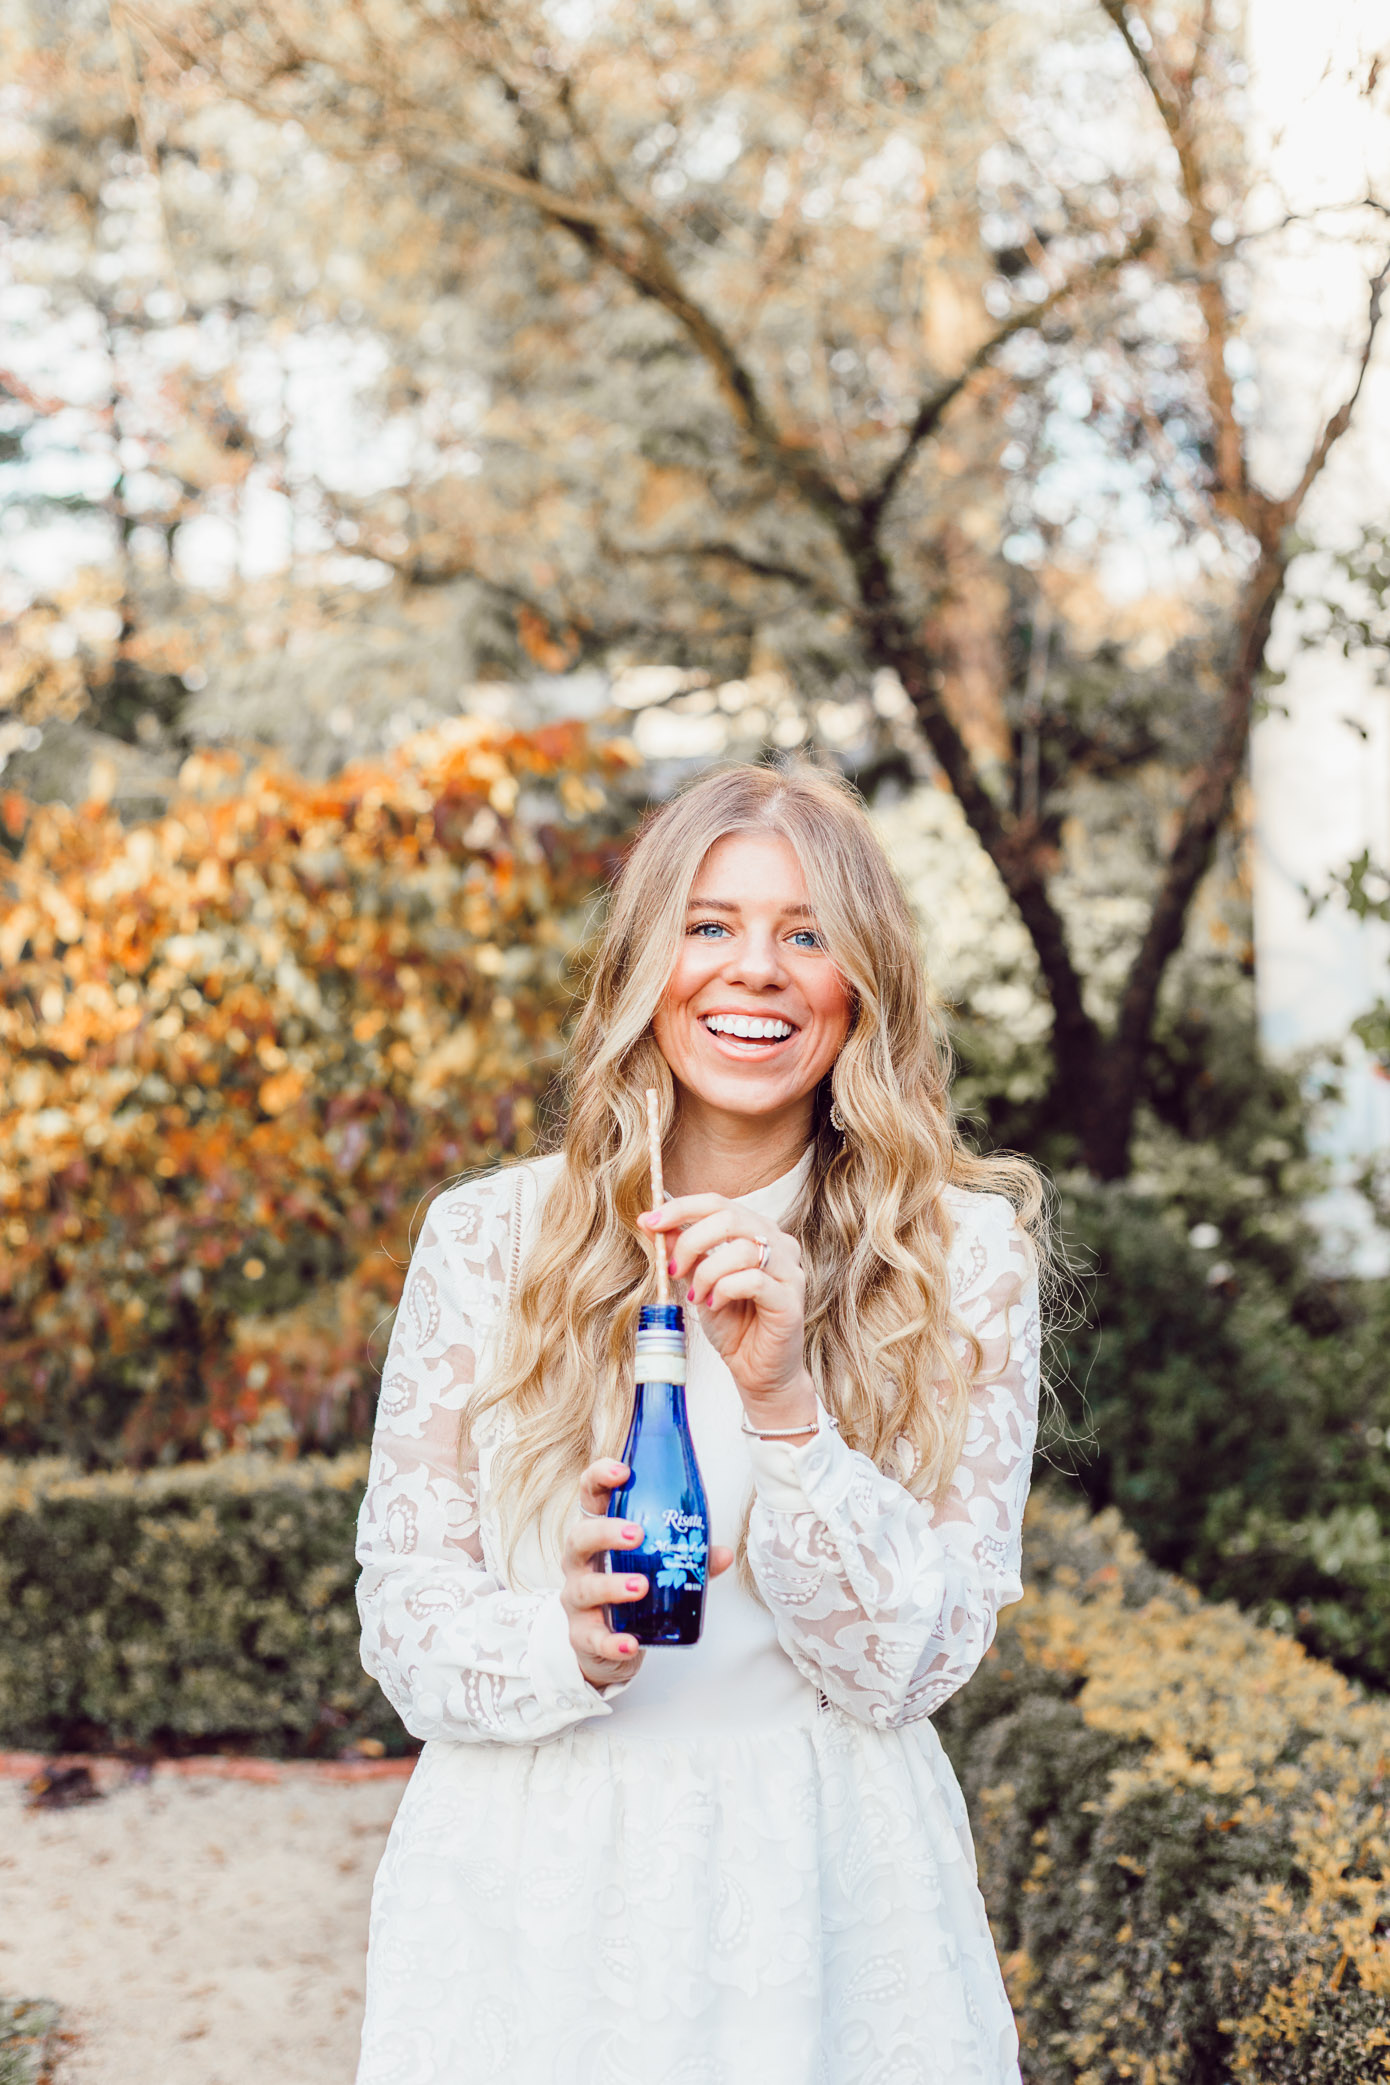 How To Celebrate Special Occasions the Right Way With The BEST Small Personal Wine Bottles- Louella Reese